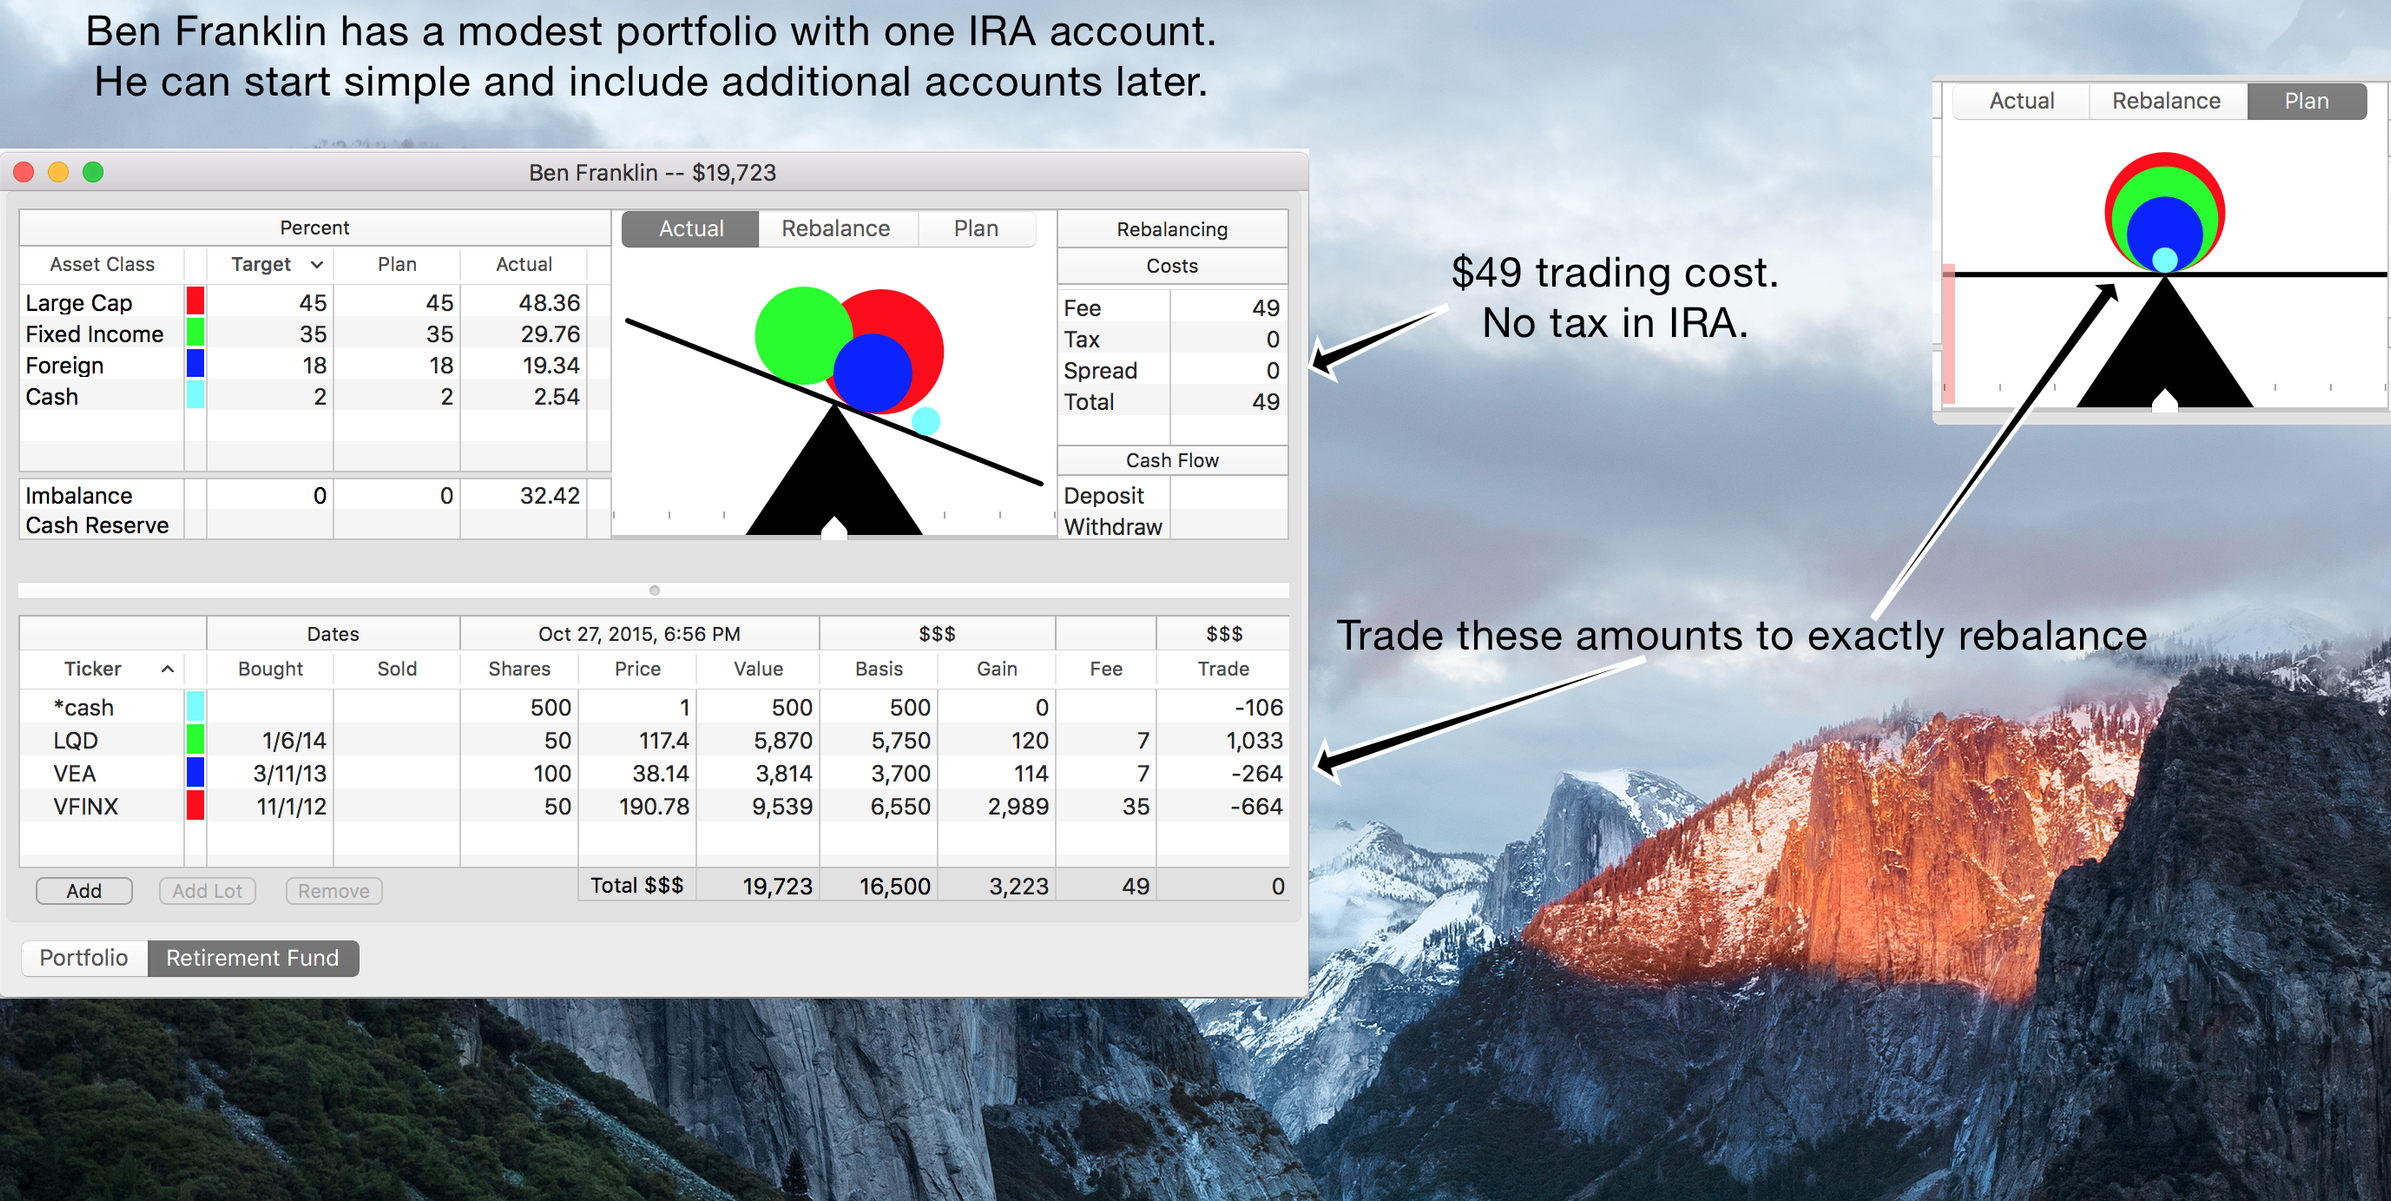 a basic portfolio, with just one account